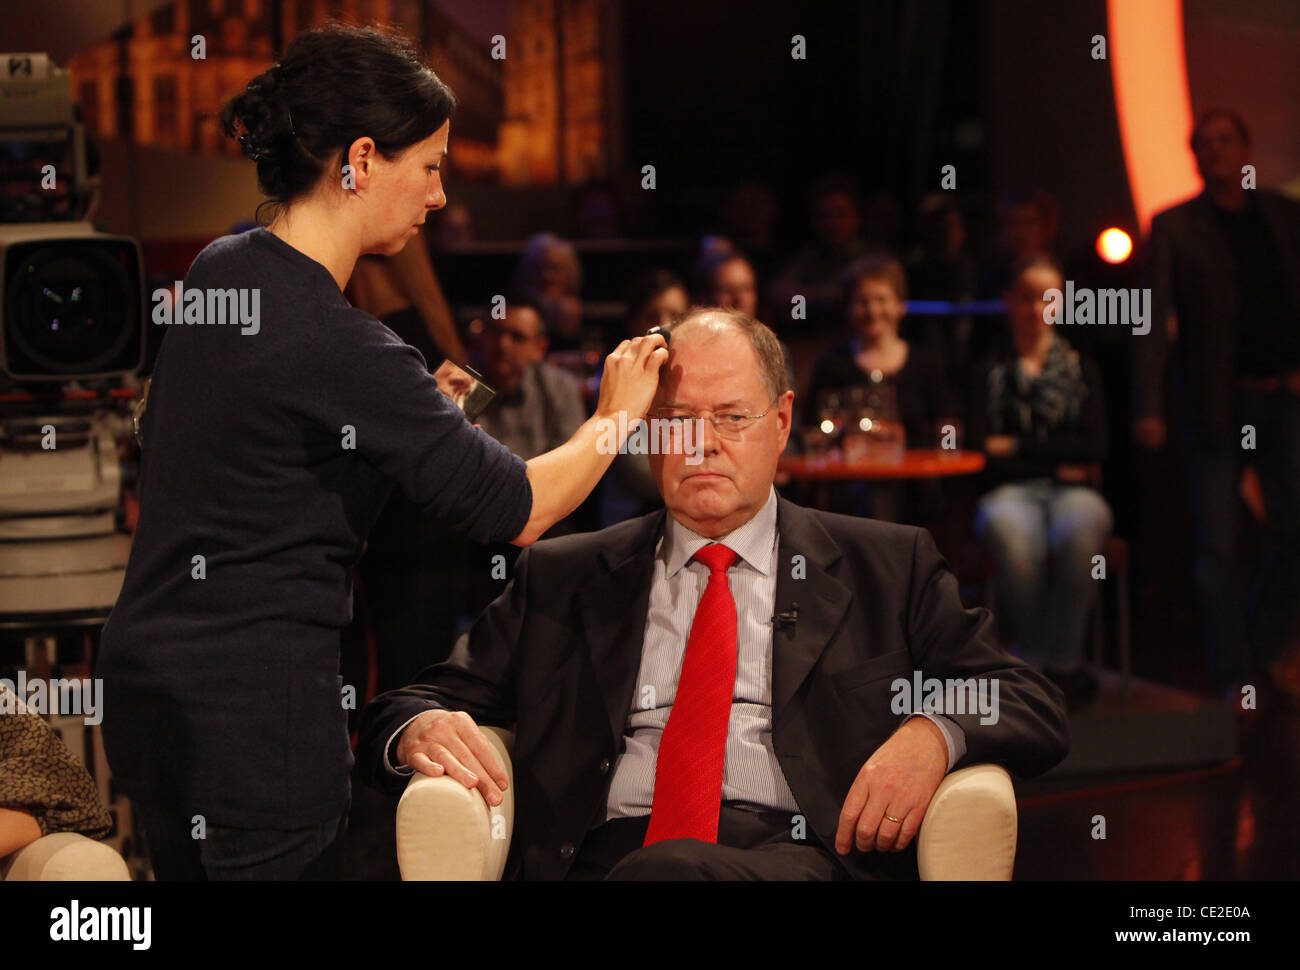 Ex Finanzminister Peer Steinbrueck has make up applied before appearing on German talkshow '3 nach 9'. Bremen, - Stock Image